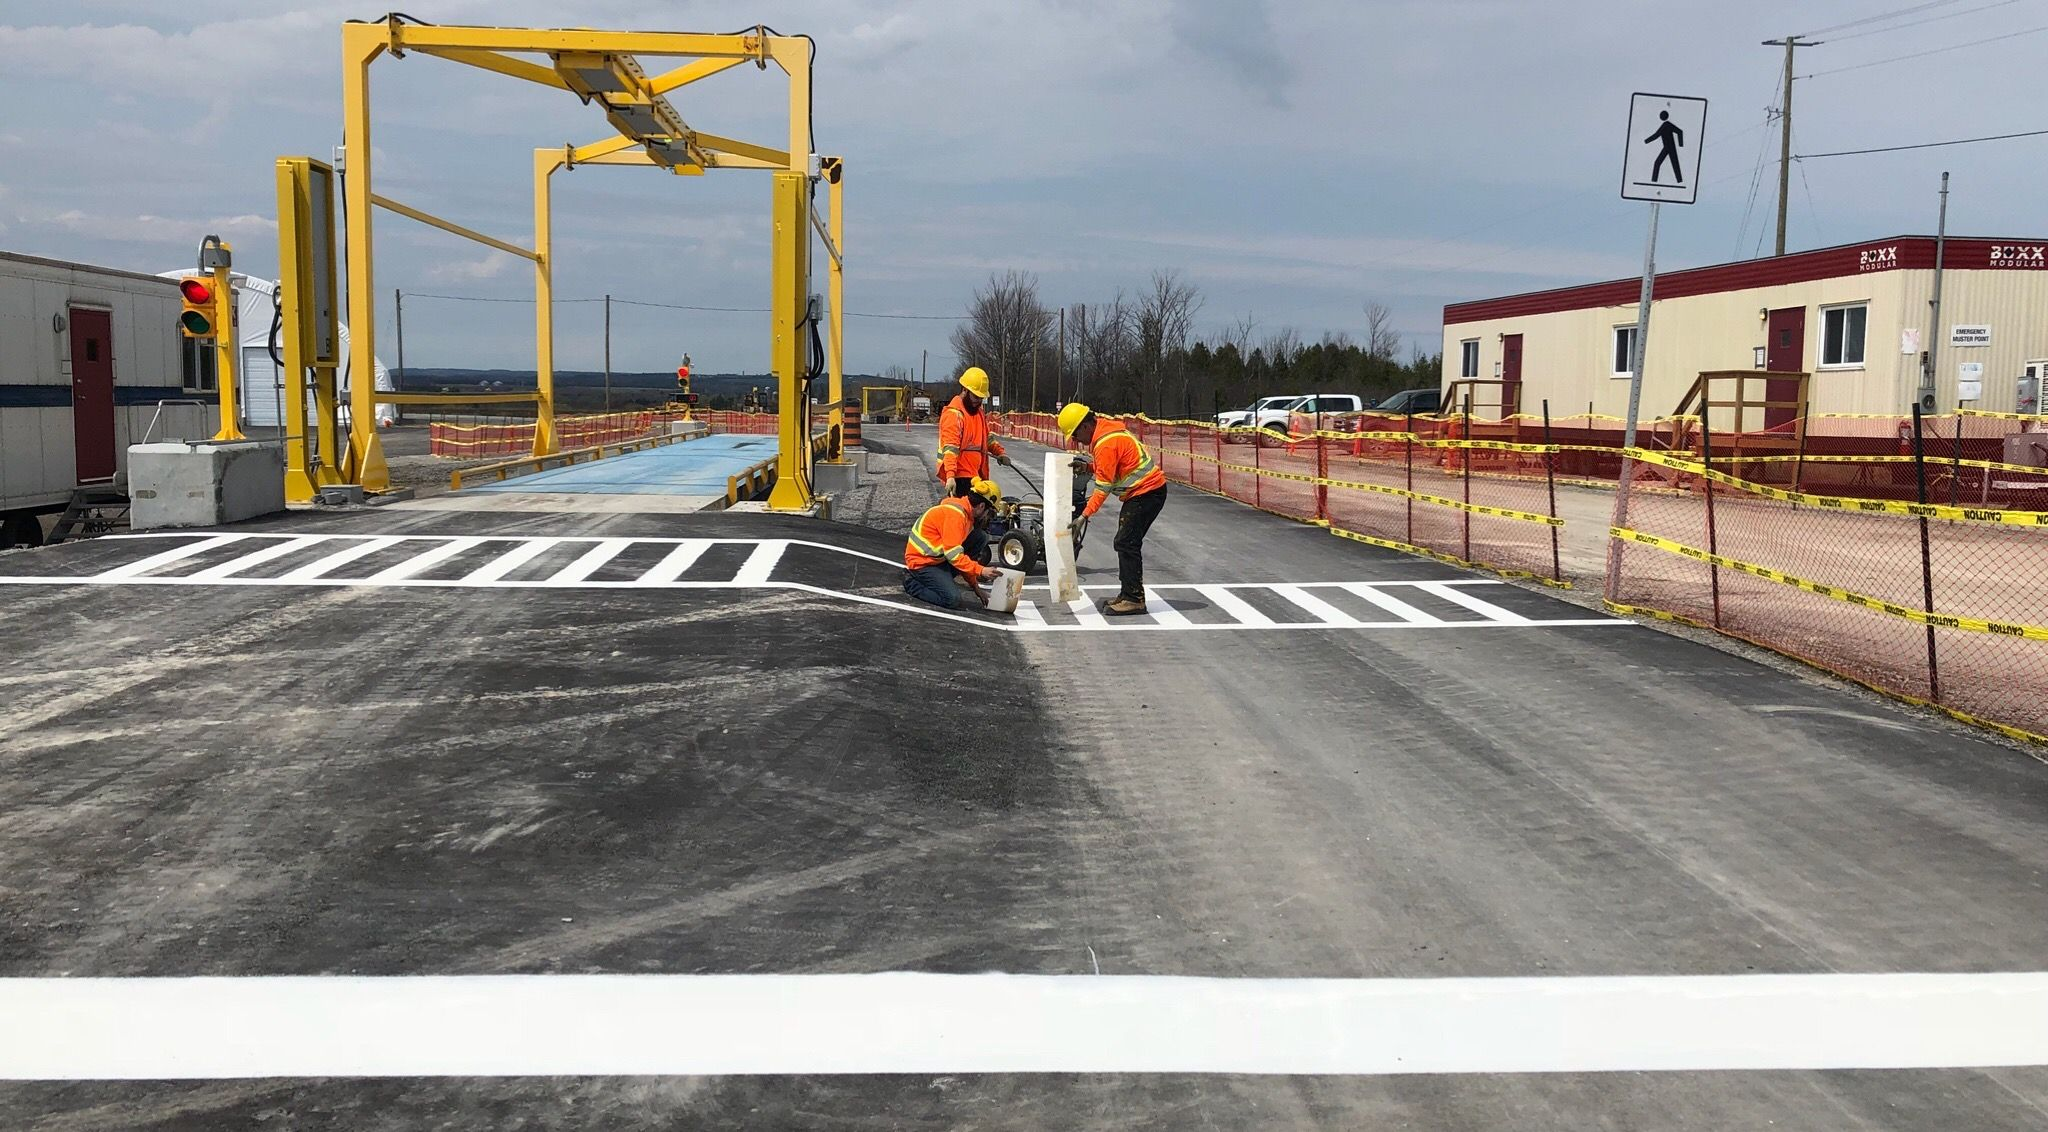 Pavement lining and construction